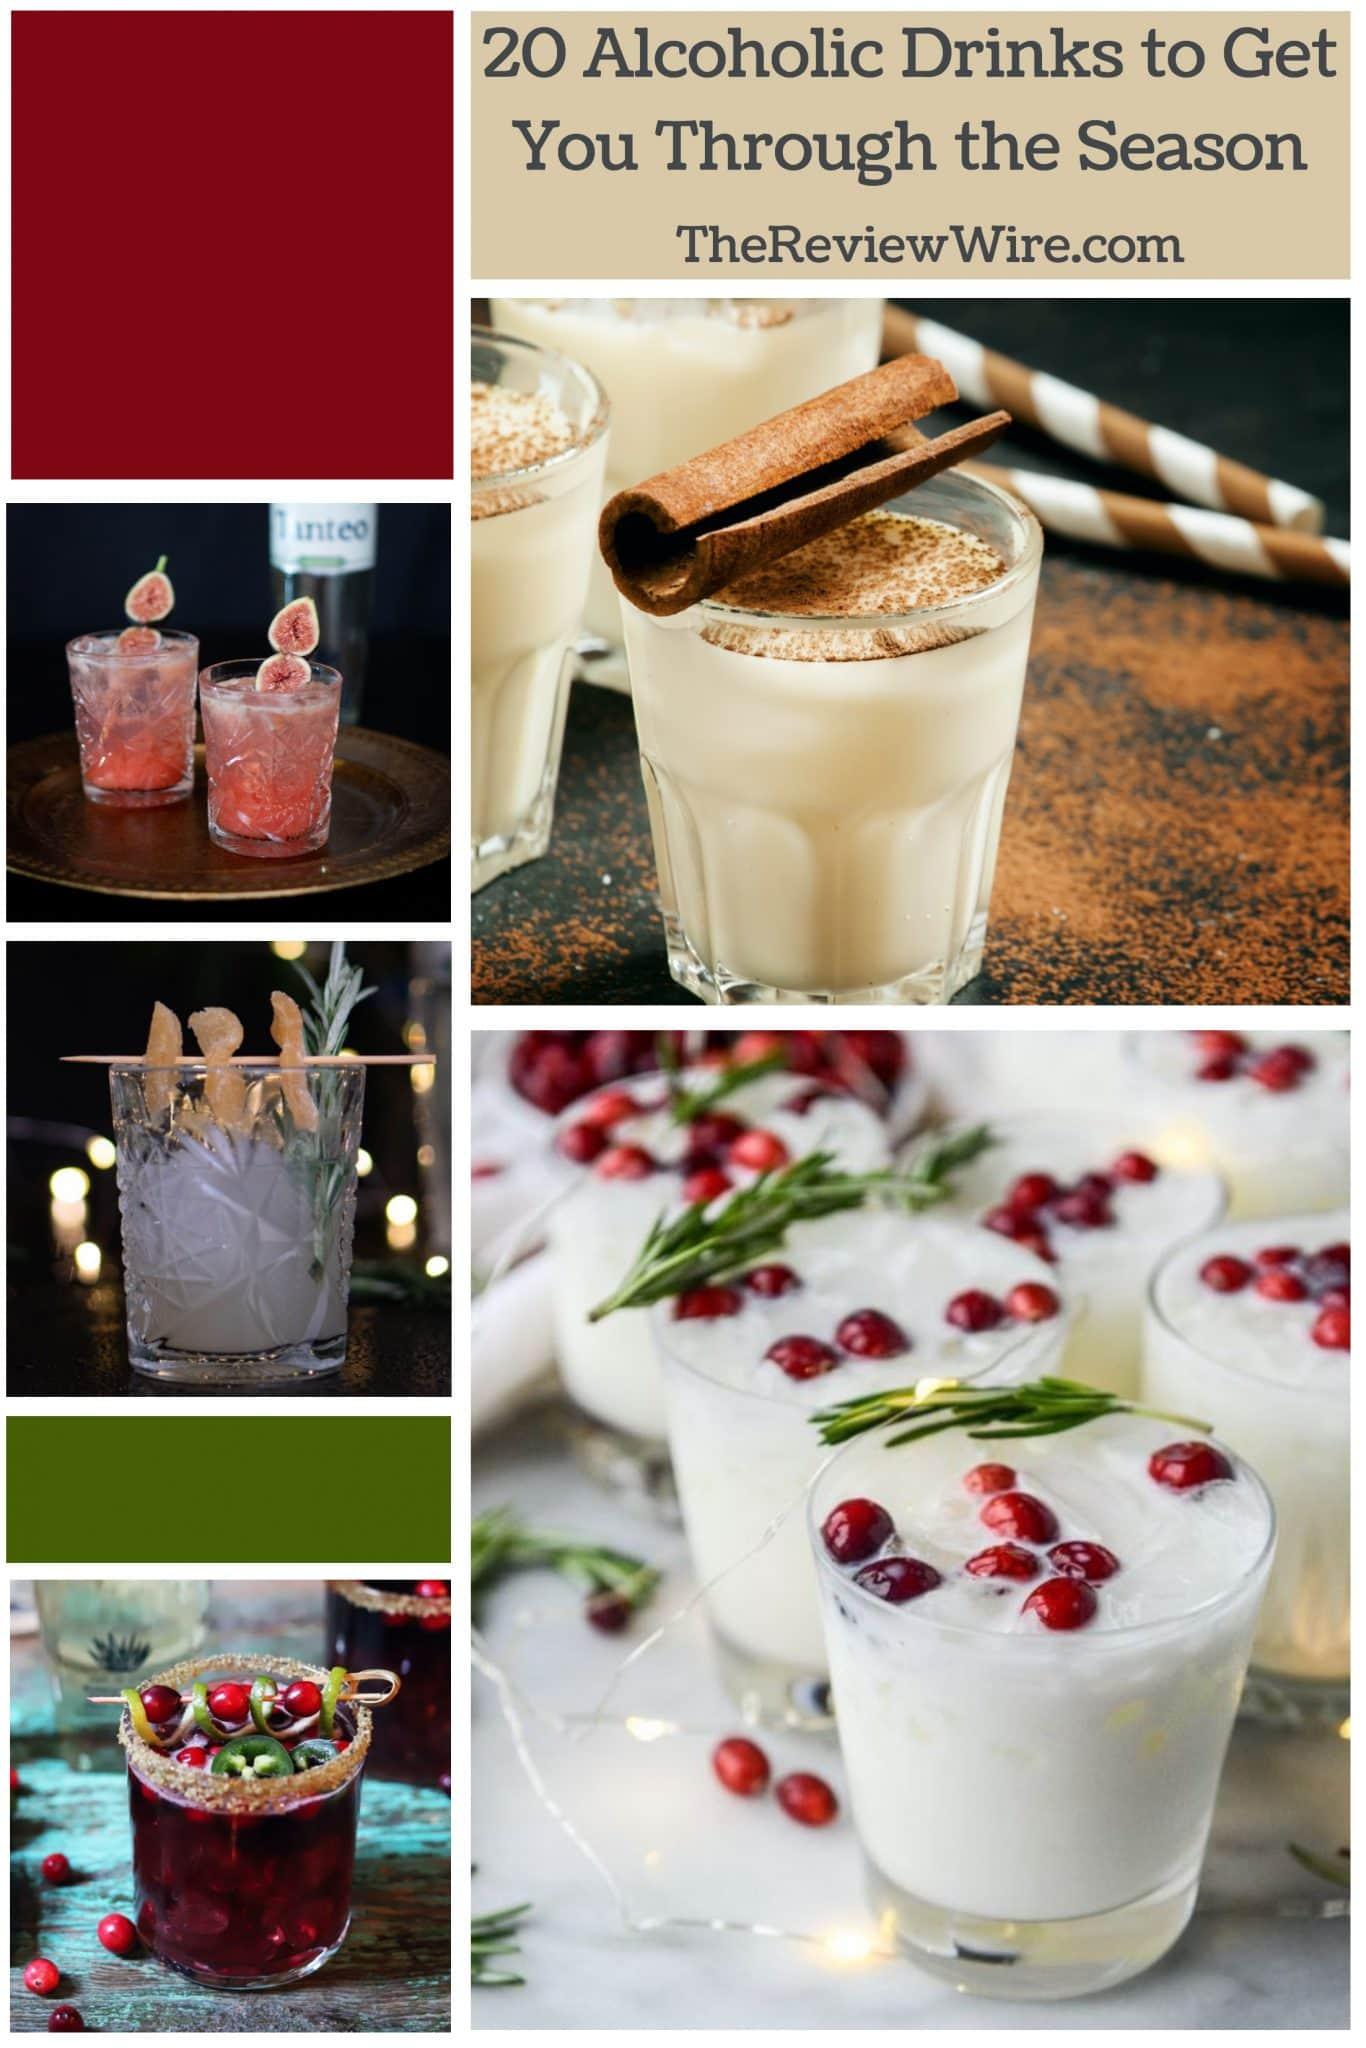 The Review Wire: 20 Alcoholic Drinks to Get You Through the Season